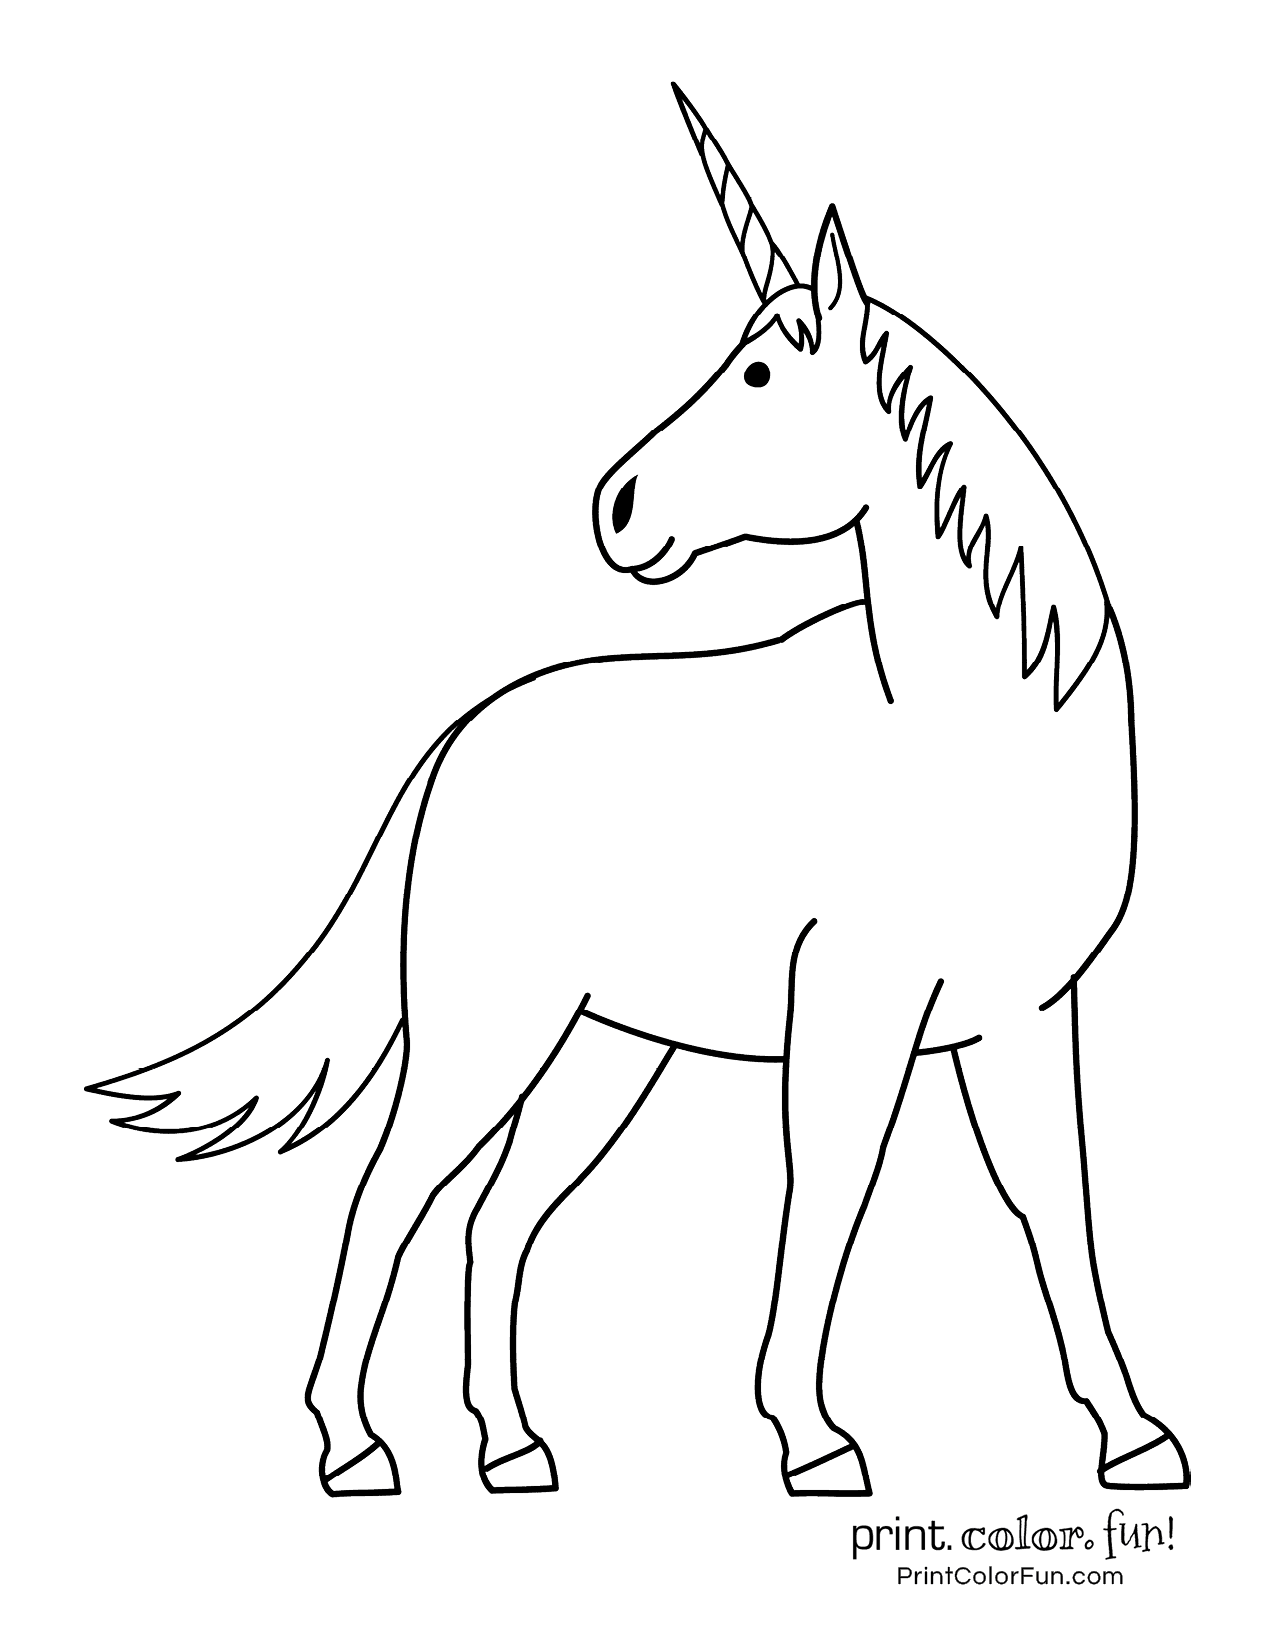 100 Magical Unicorn Coloring Pages The Ultimate Free Printable Collection At Print Color Fun Com Unicorn Coloring Pages Coloring Pages Magical Unicorn